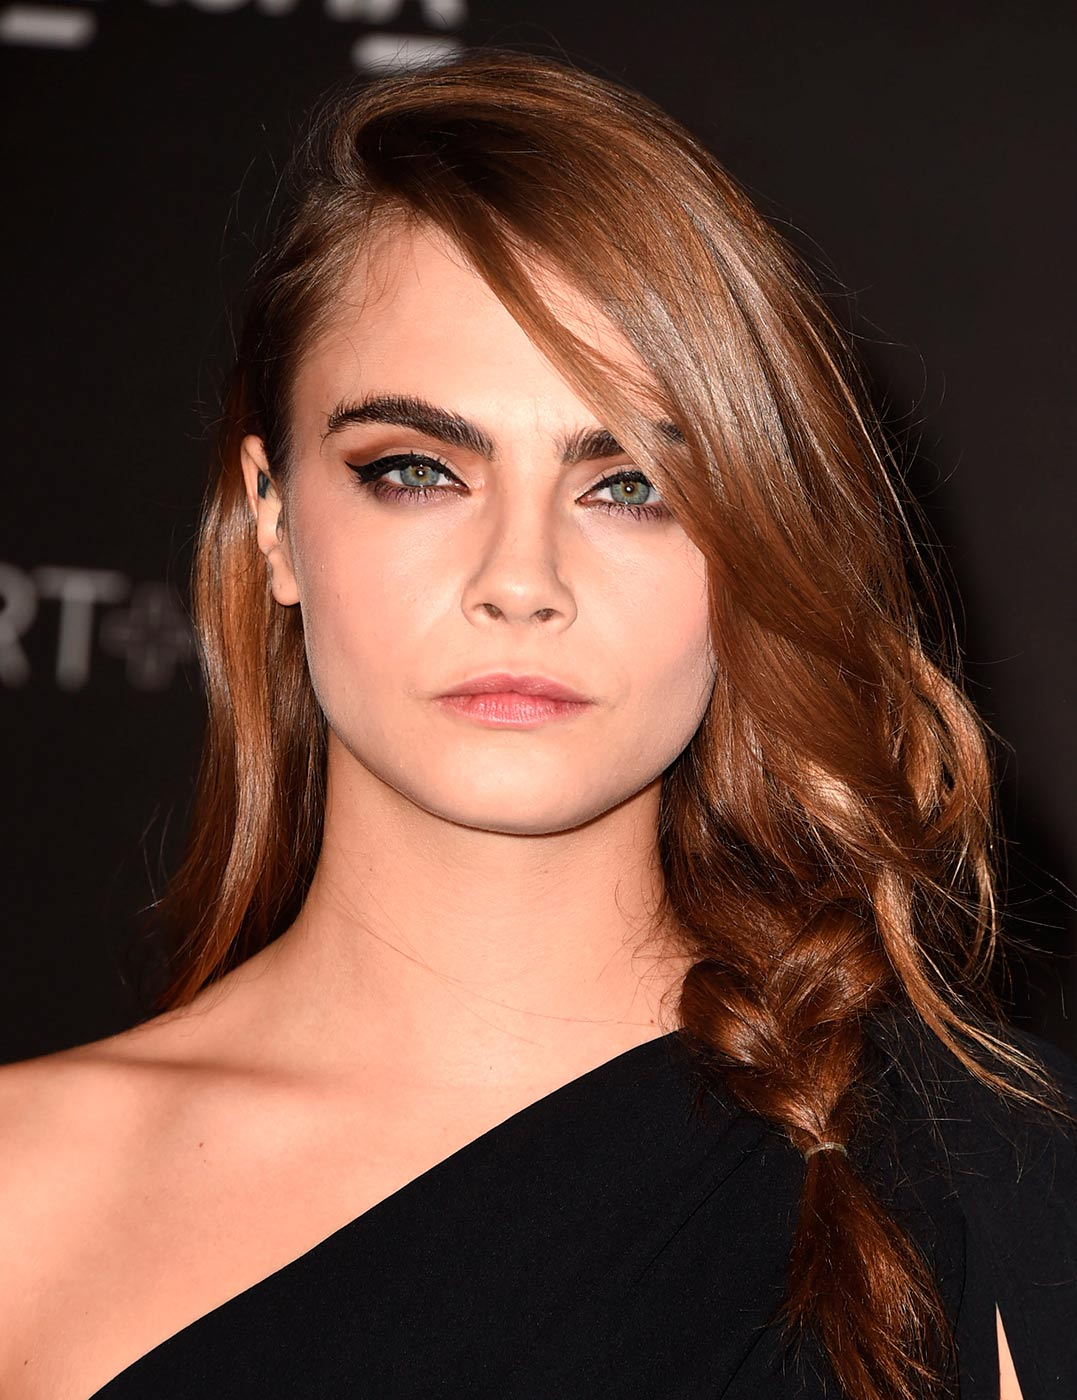 Have you seen Cara Delevingne's latest acting turn? http://t.co/JPzBuJM48D http://t.co/nOmJhYJBCG